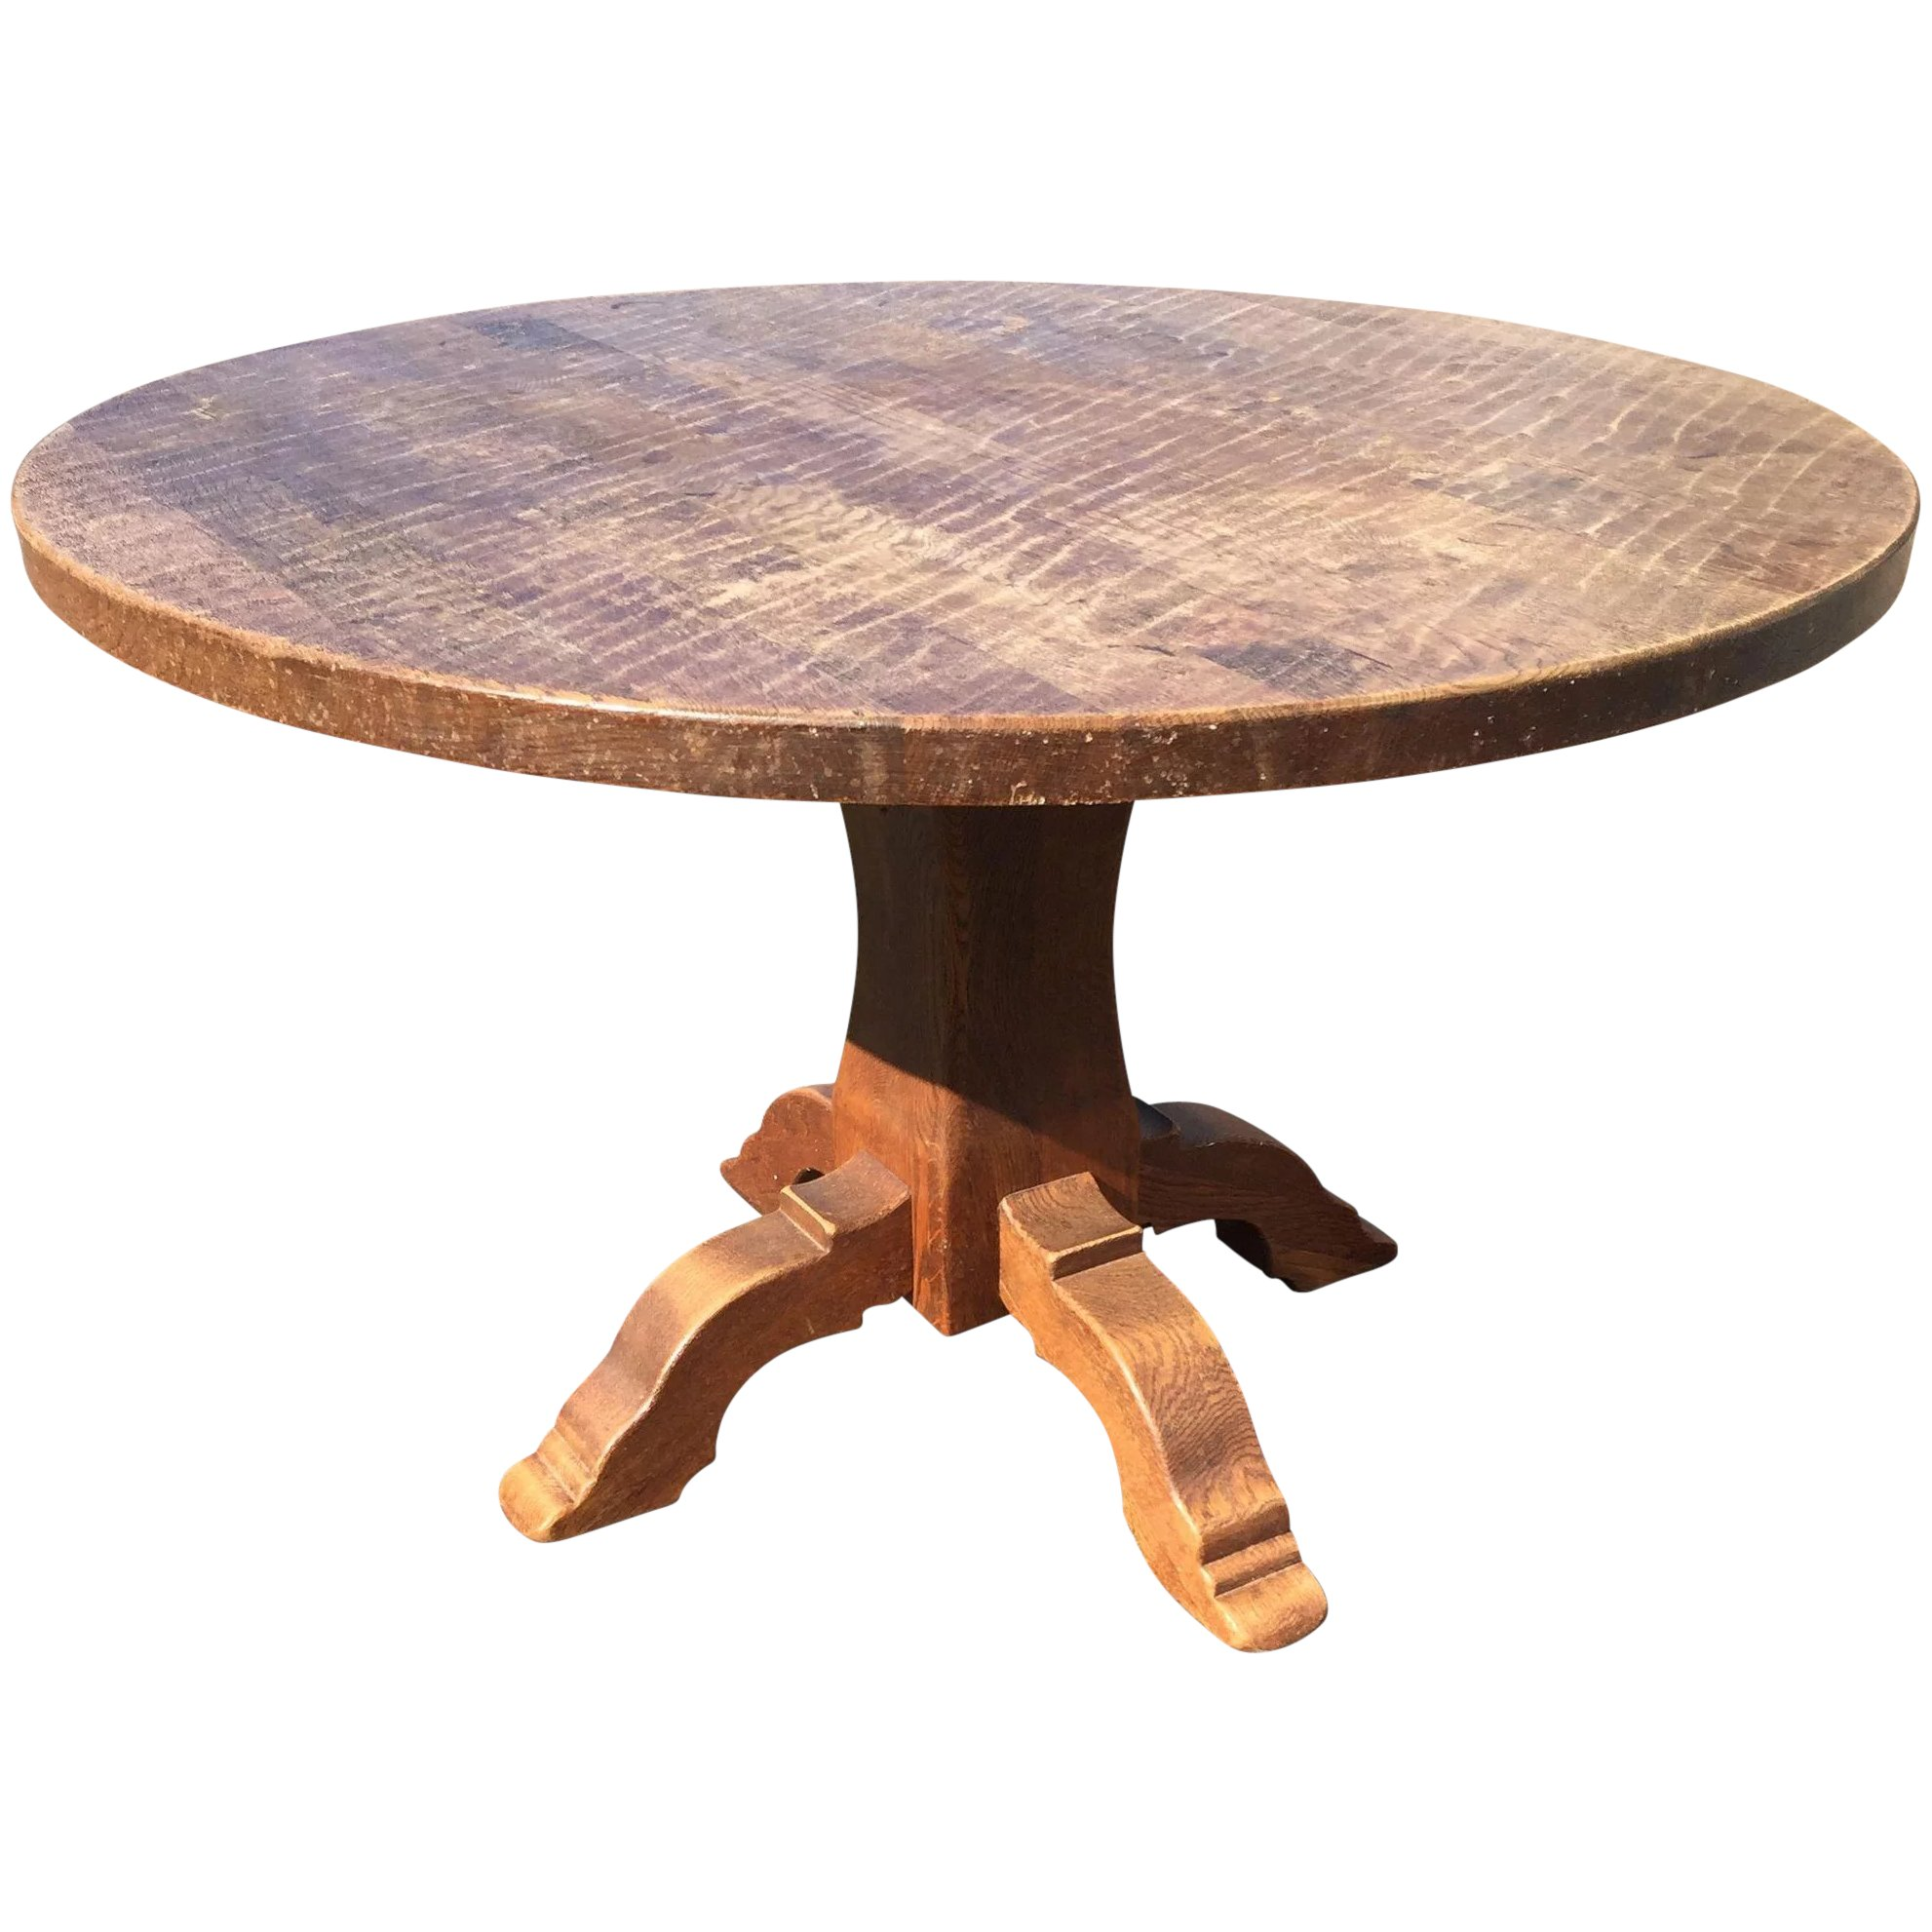 Vintage French Rustic Oak Wood Round